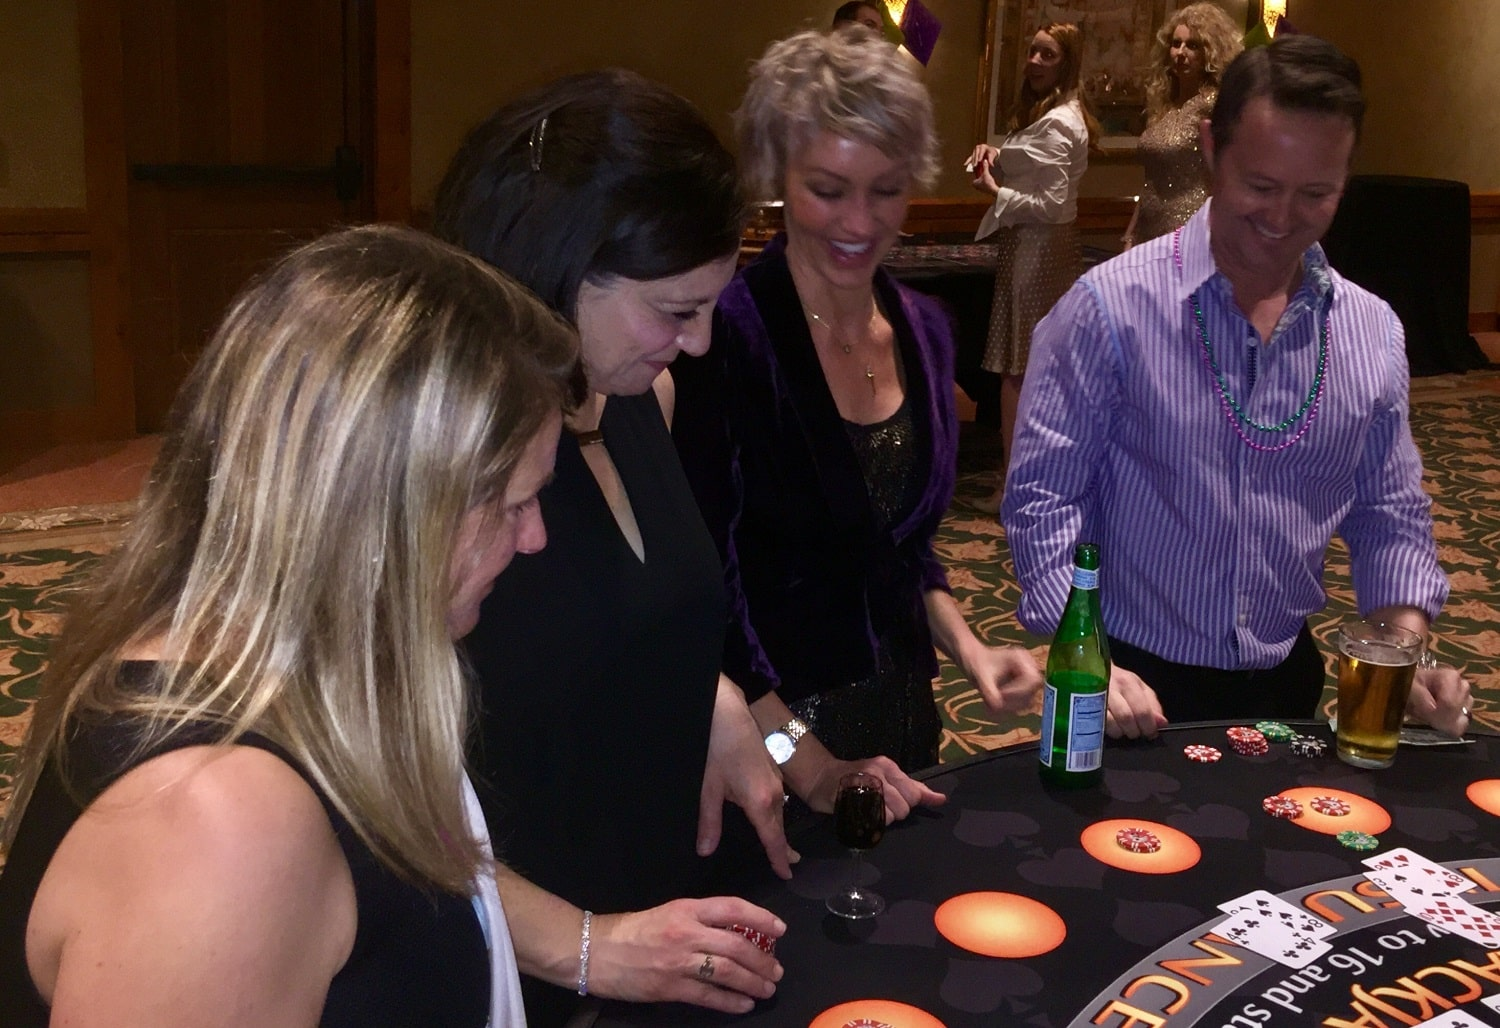 Casino Party at Winery in [location]